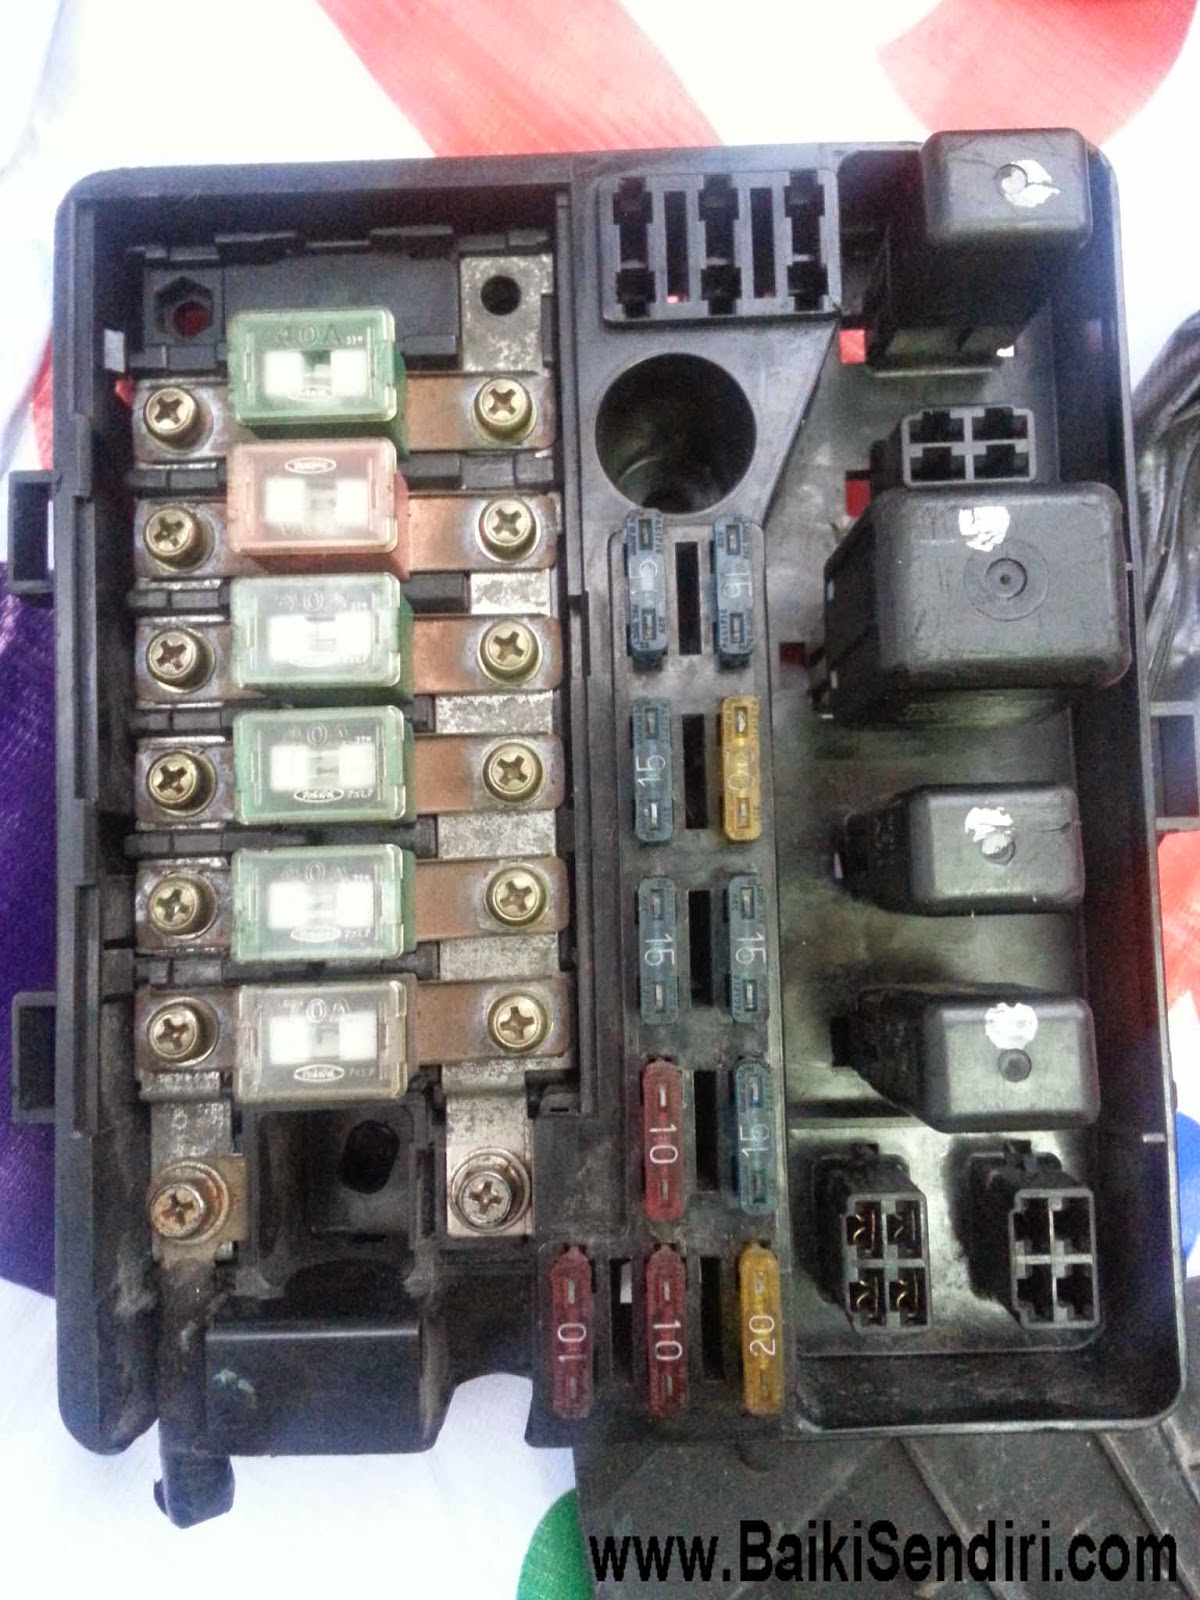 Honda B20A Prelude BA5 Fuse box replacement DIY 4 fuse box kancil 850 wiring diagram simonand 3 phase fuse box at webbmarketing.co